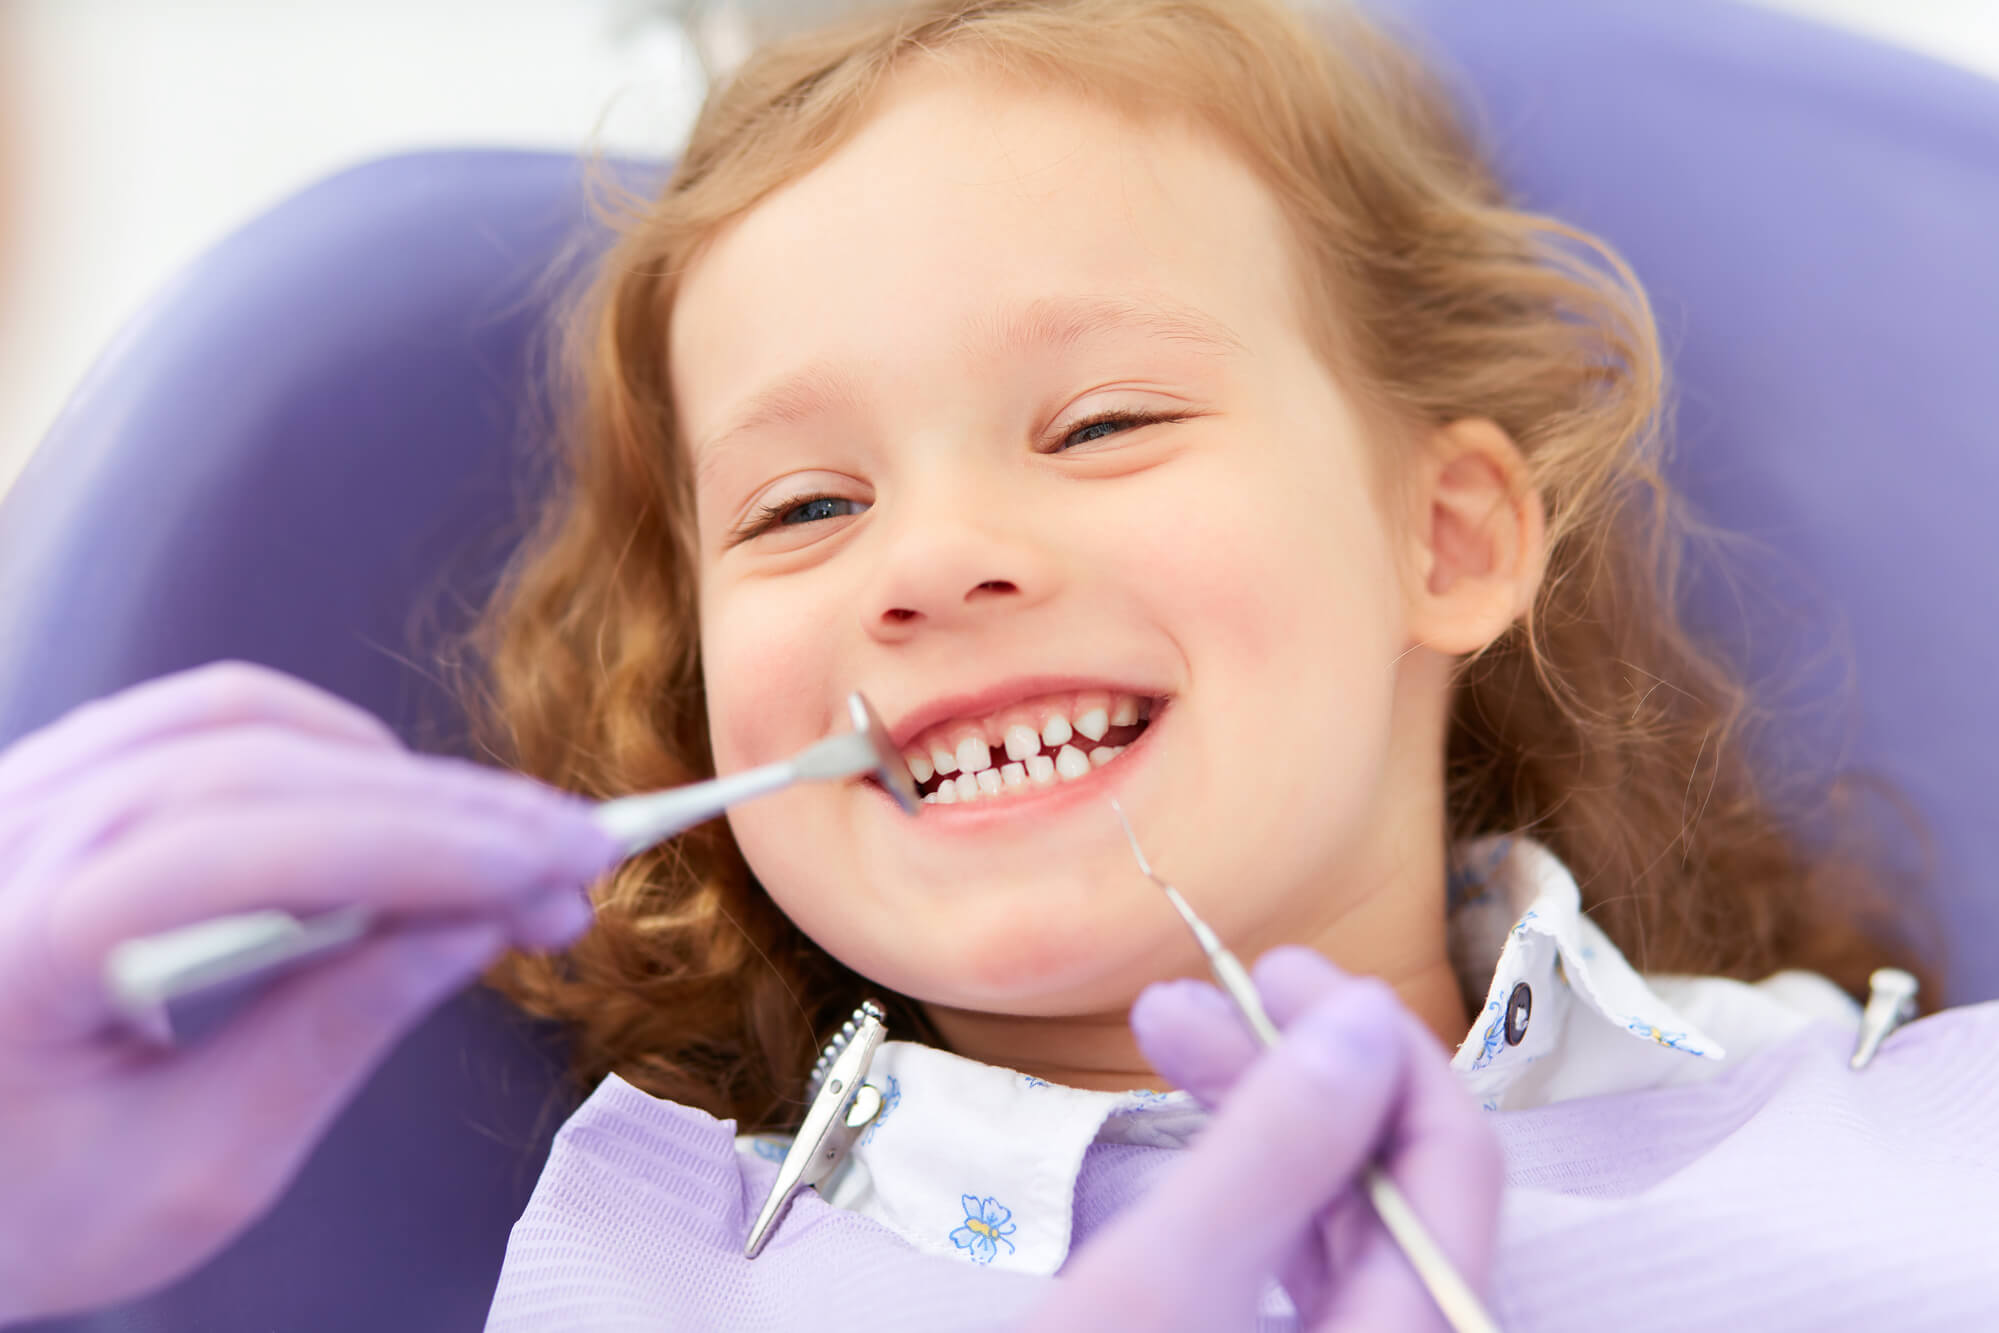 where can i get plantation oral surgery?